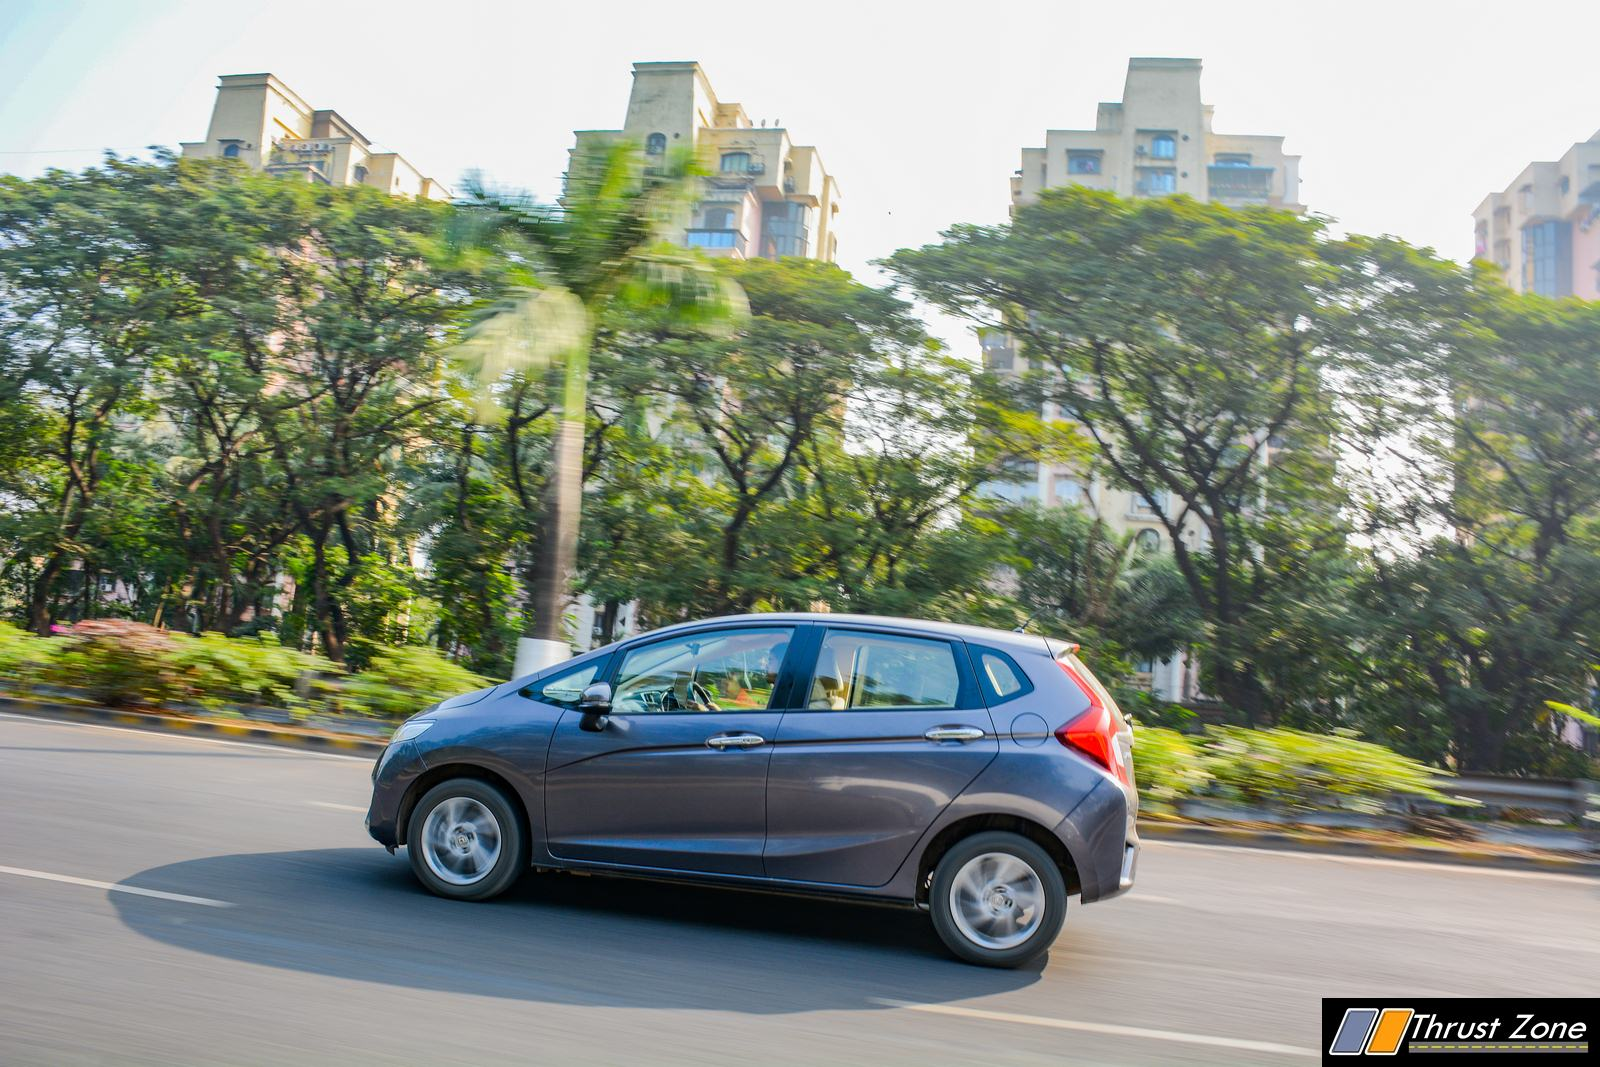 2019-Honda-Jazz-bs4-review-petrol-diesel-5